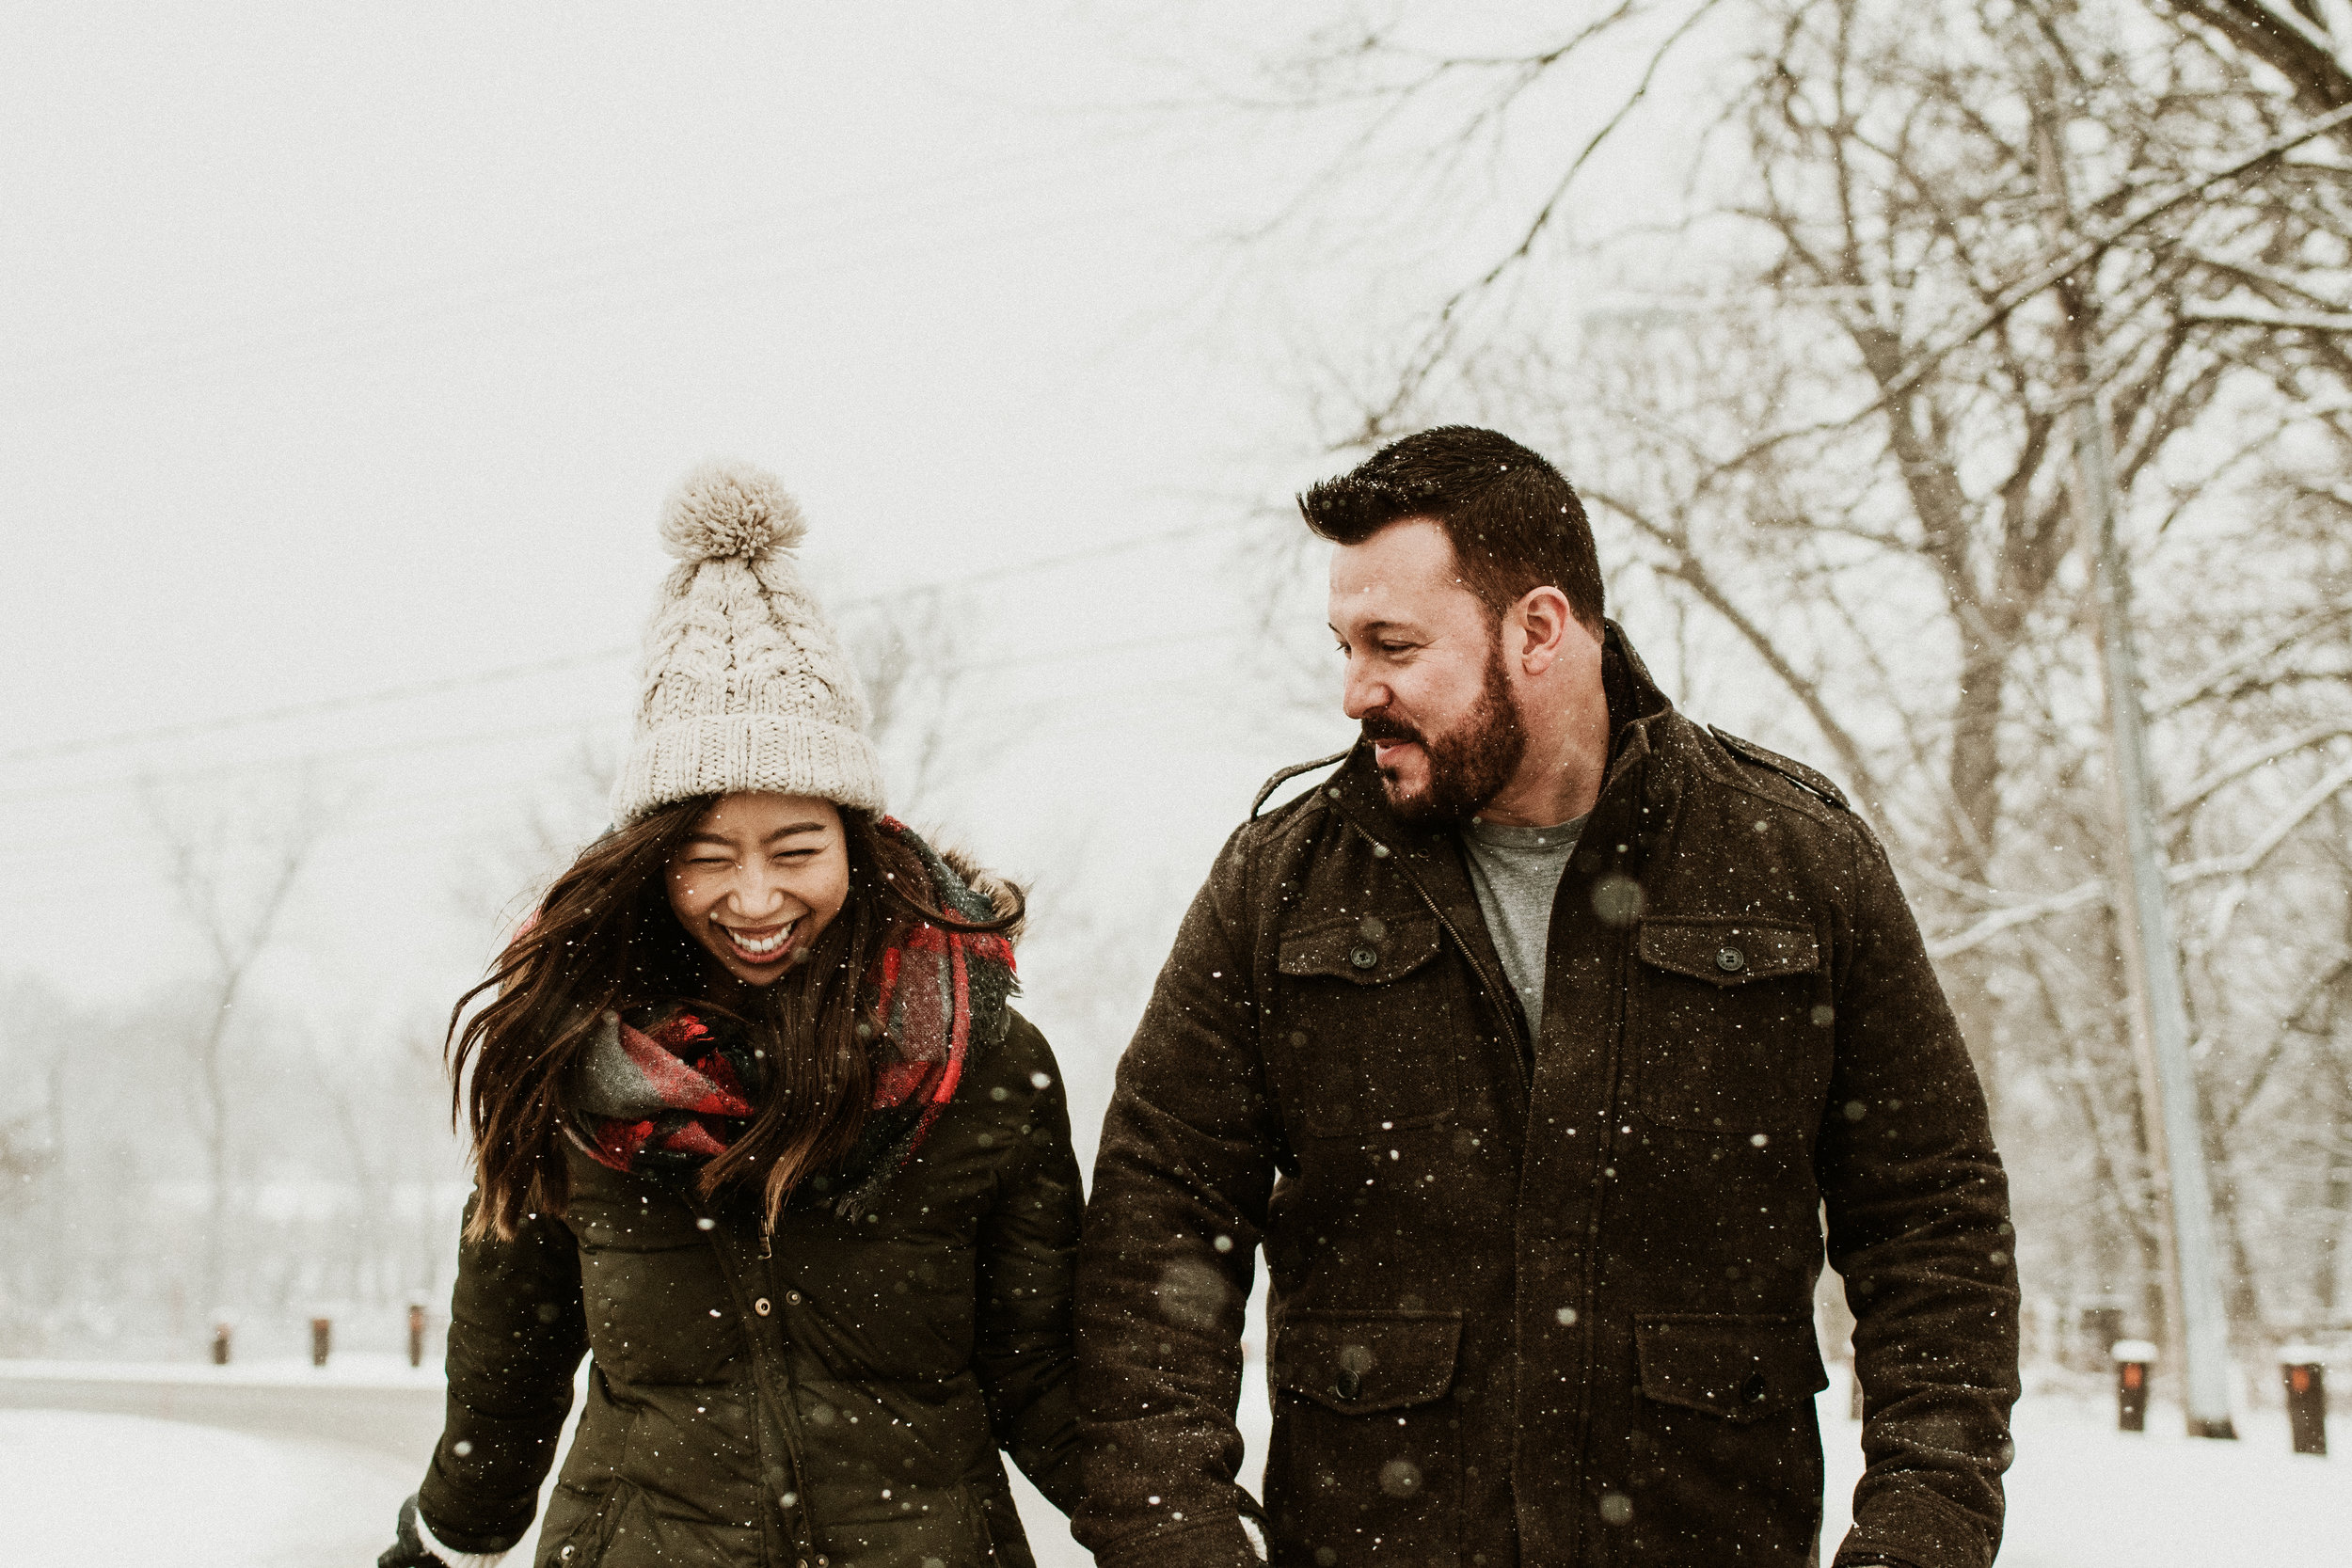 Cindy and David - Snowy Winter Engagement Session | Graue Mill & Museum | Oak Brook, IL